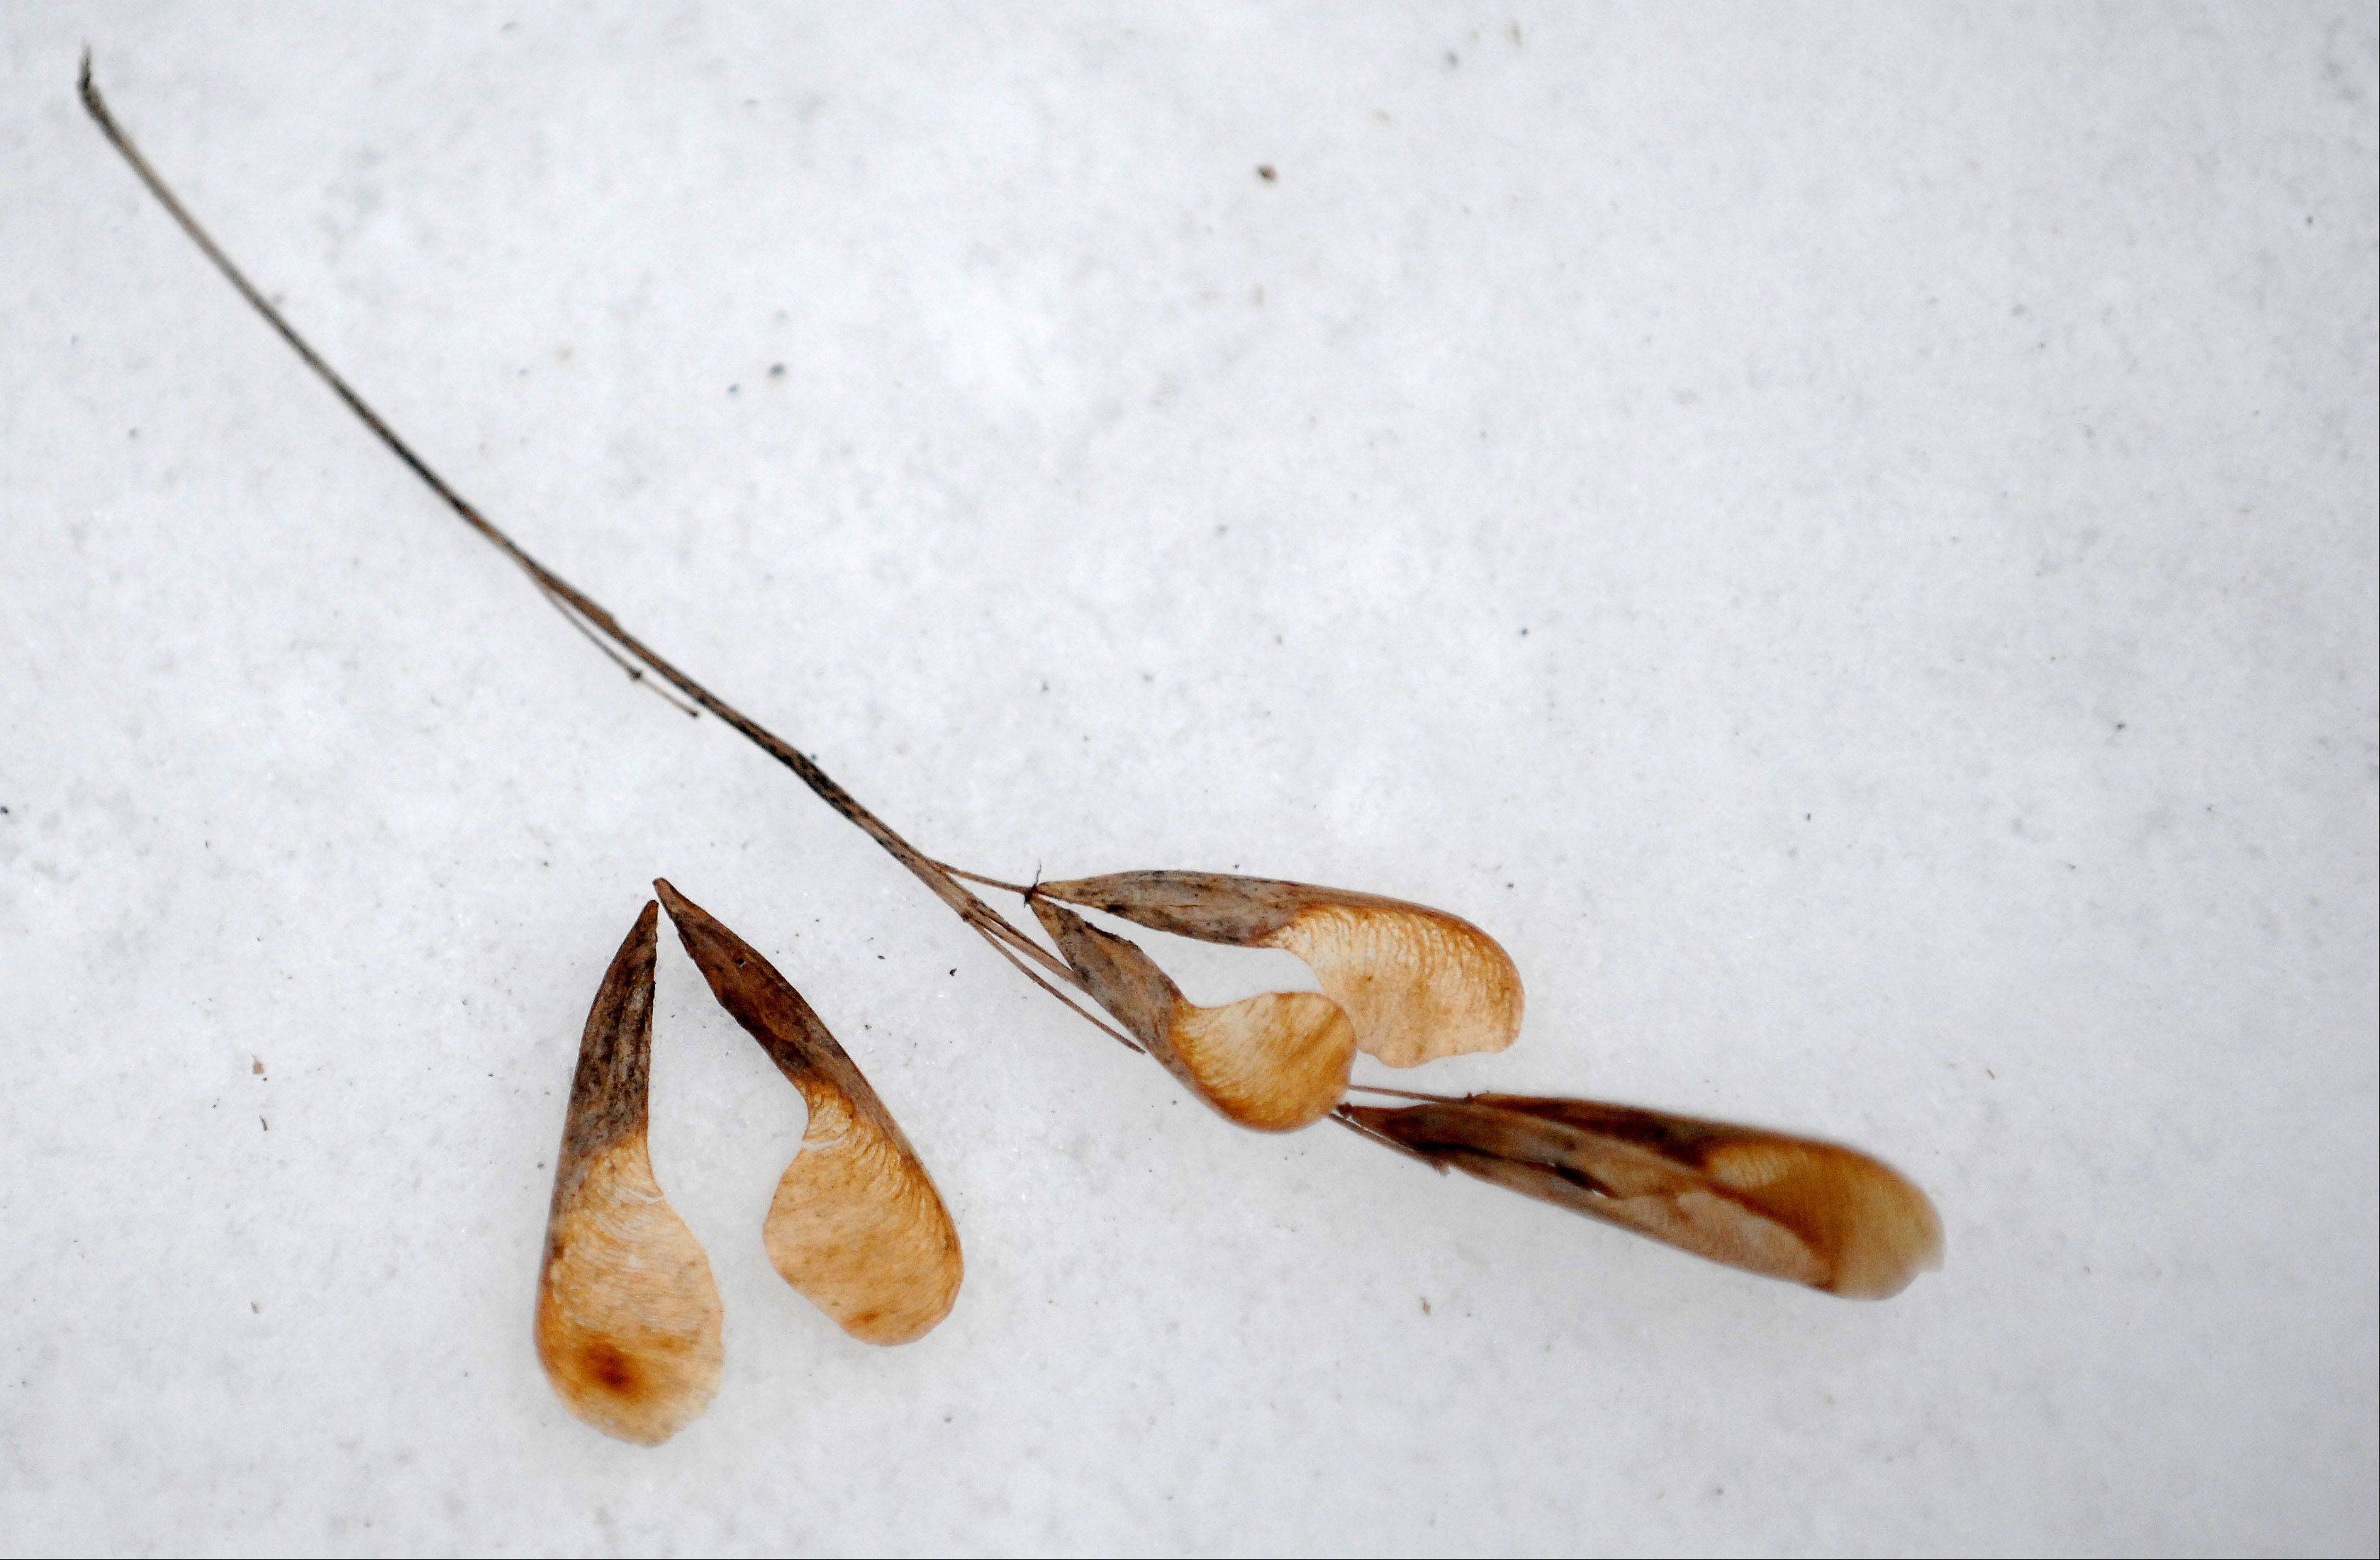 The seeds from a boxelder at Tekakwitha Woods in St. Charles.